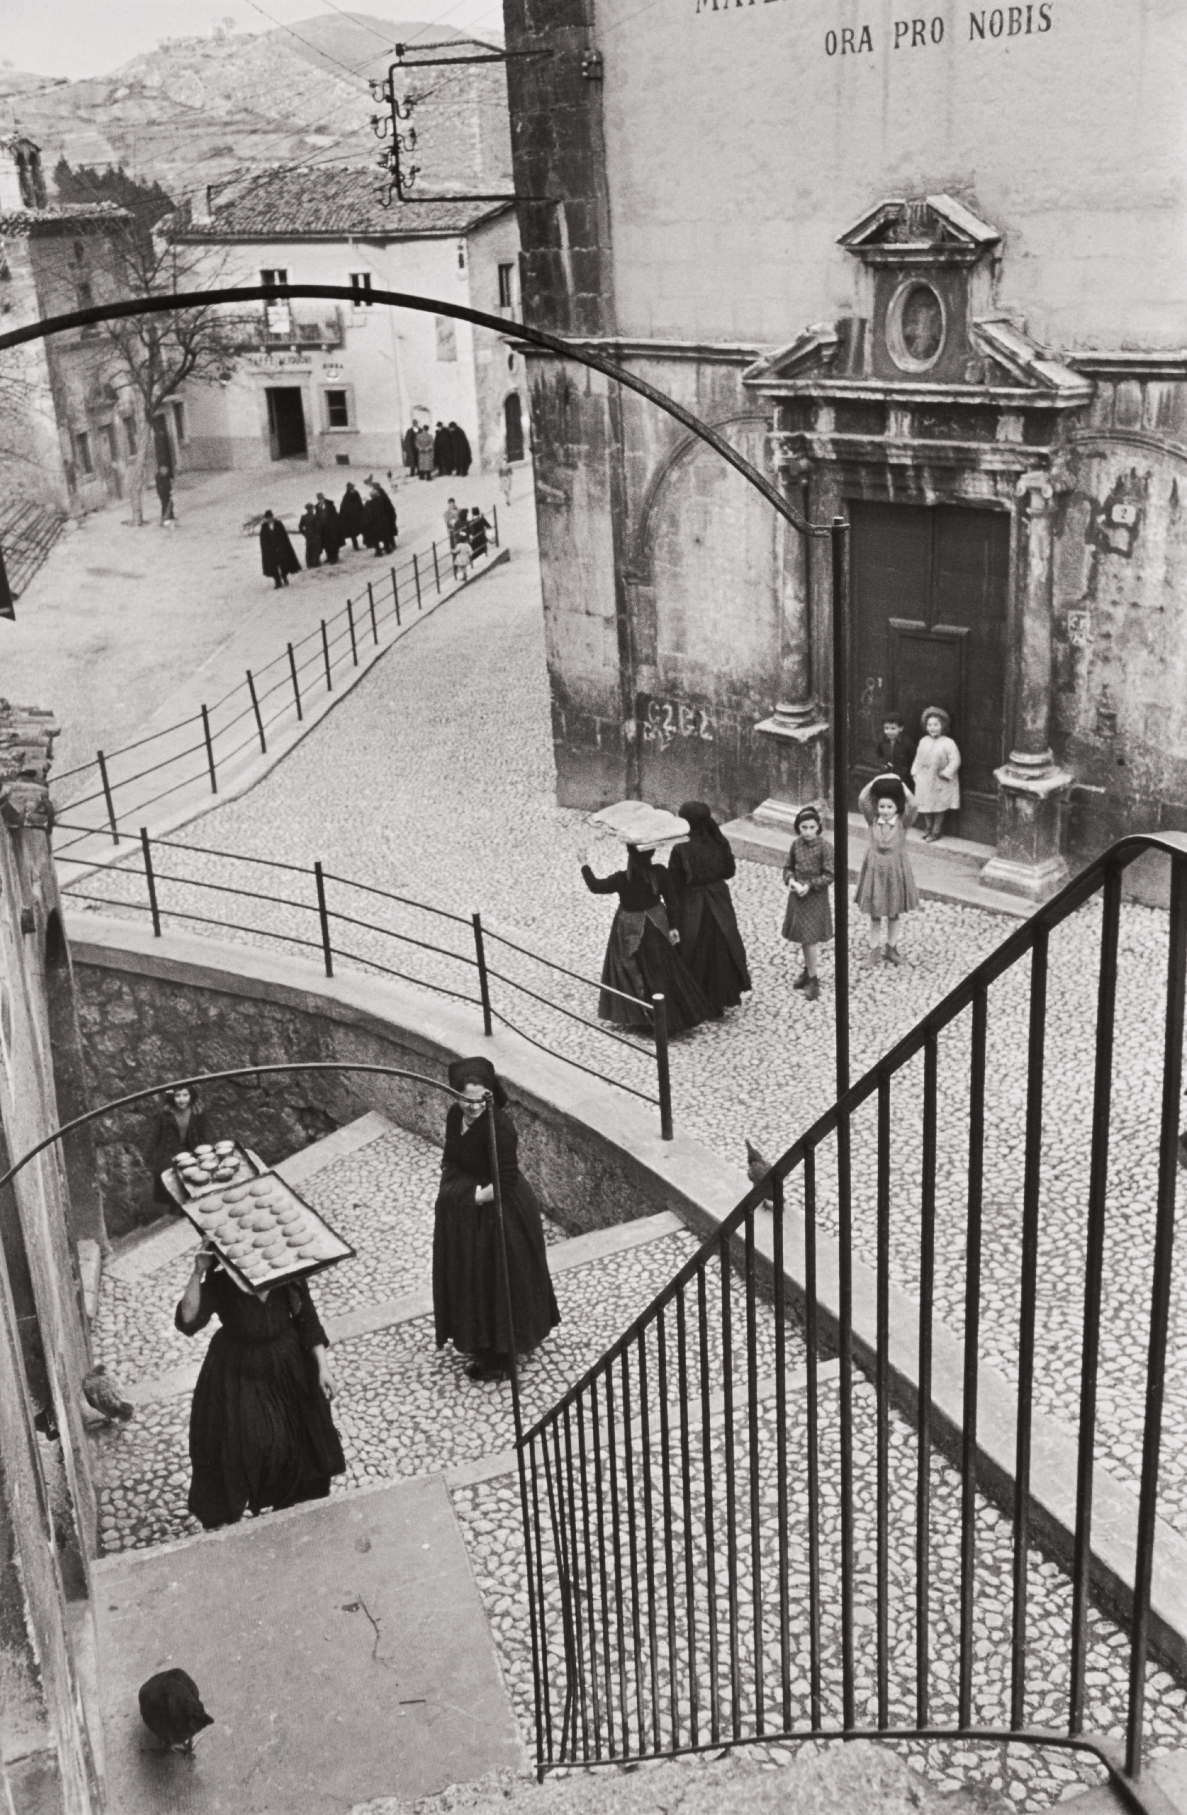 Scanno, L'Aquila, Abruzzo, Italy, a photograph that Henri Cartier-Bresson shot in 1951. This gelatin silver print was made later, however.